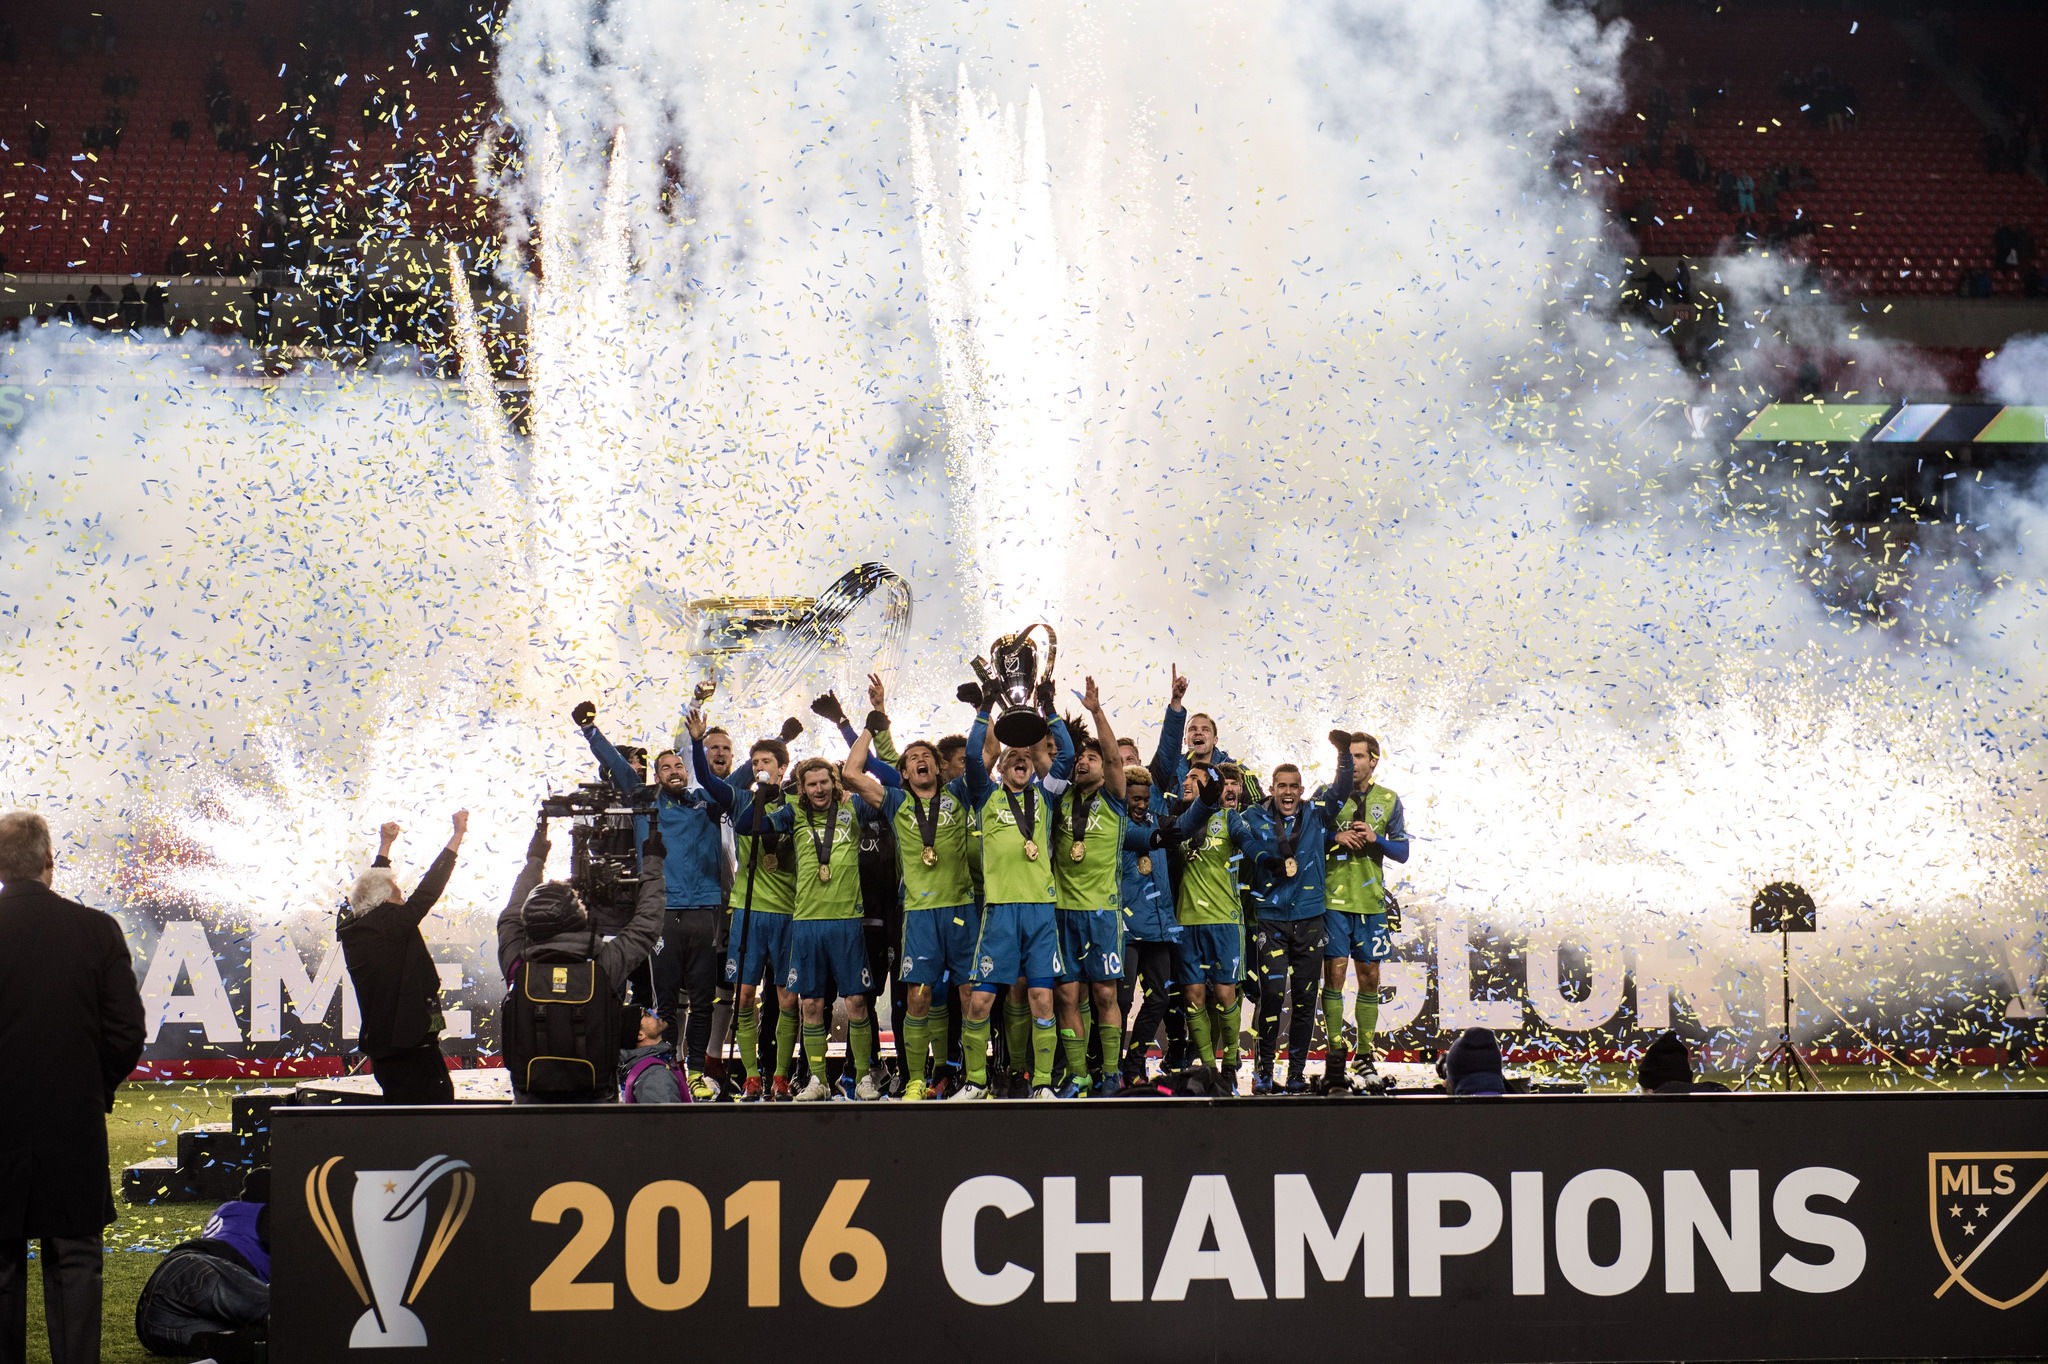 Sounders mls cup champions h3gfdw